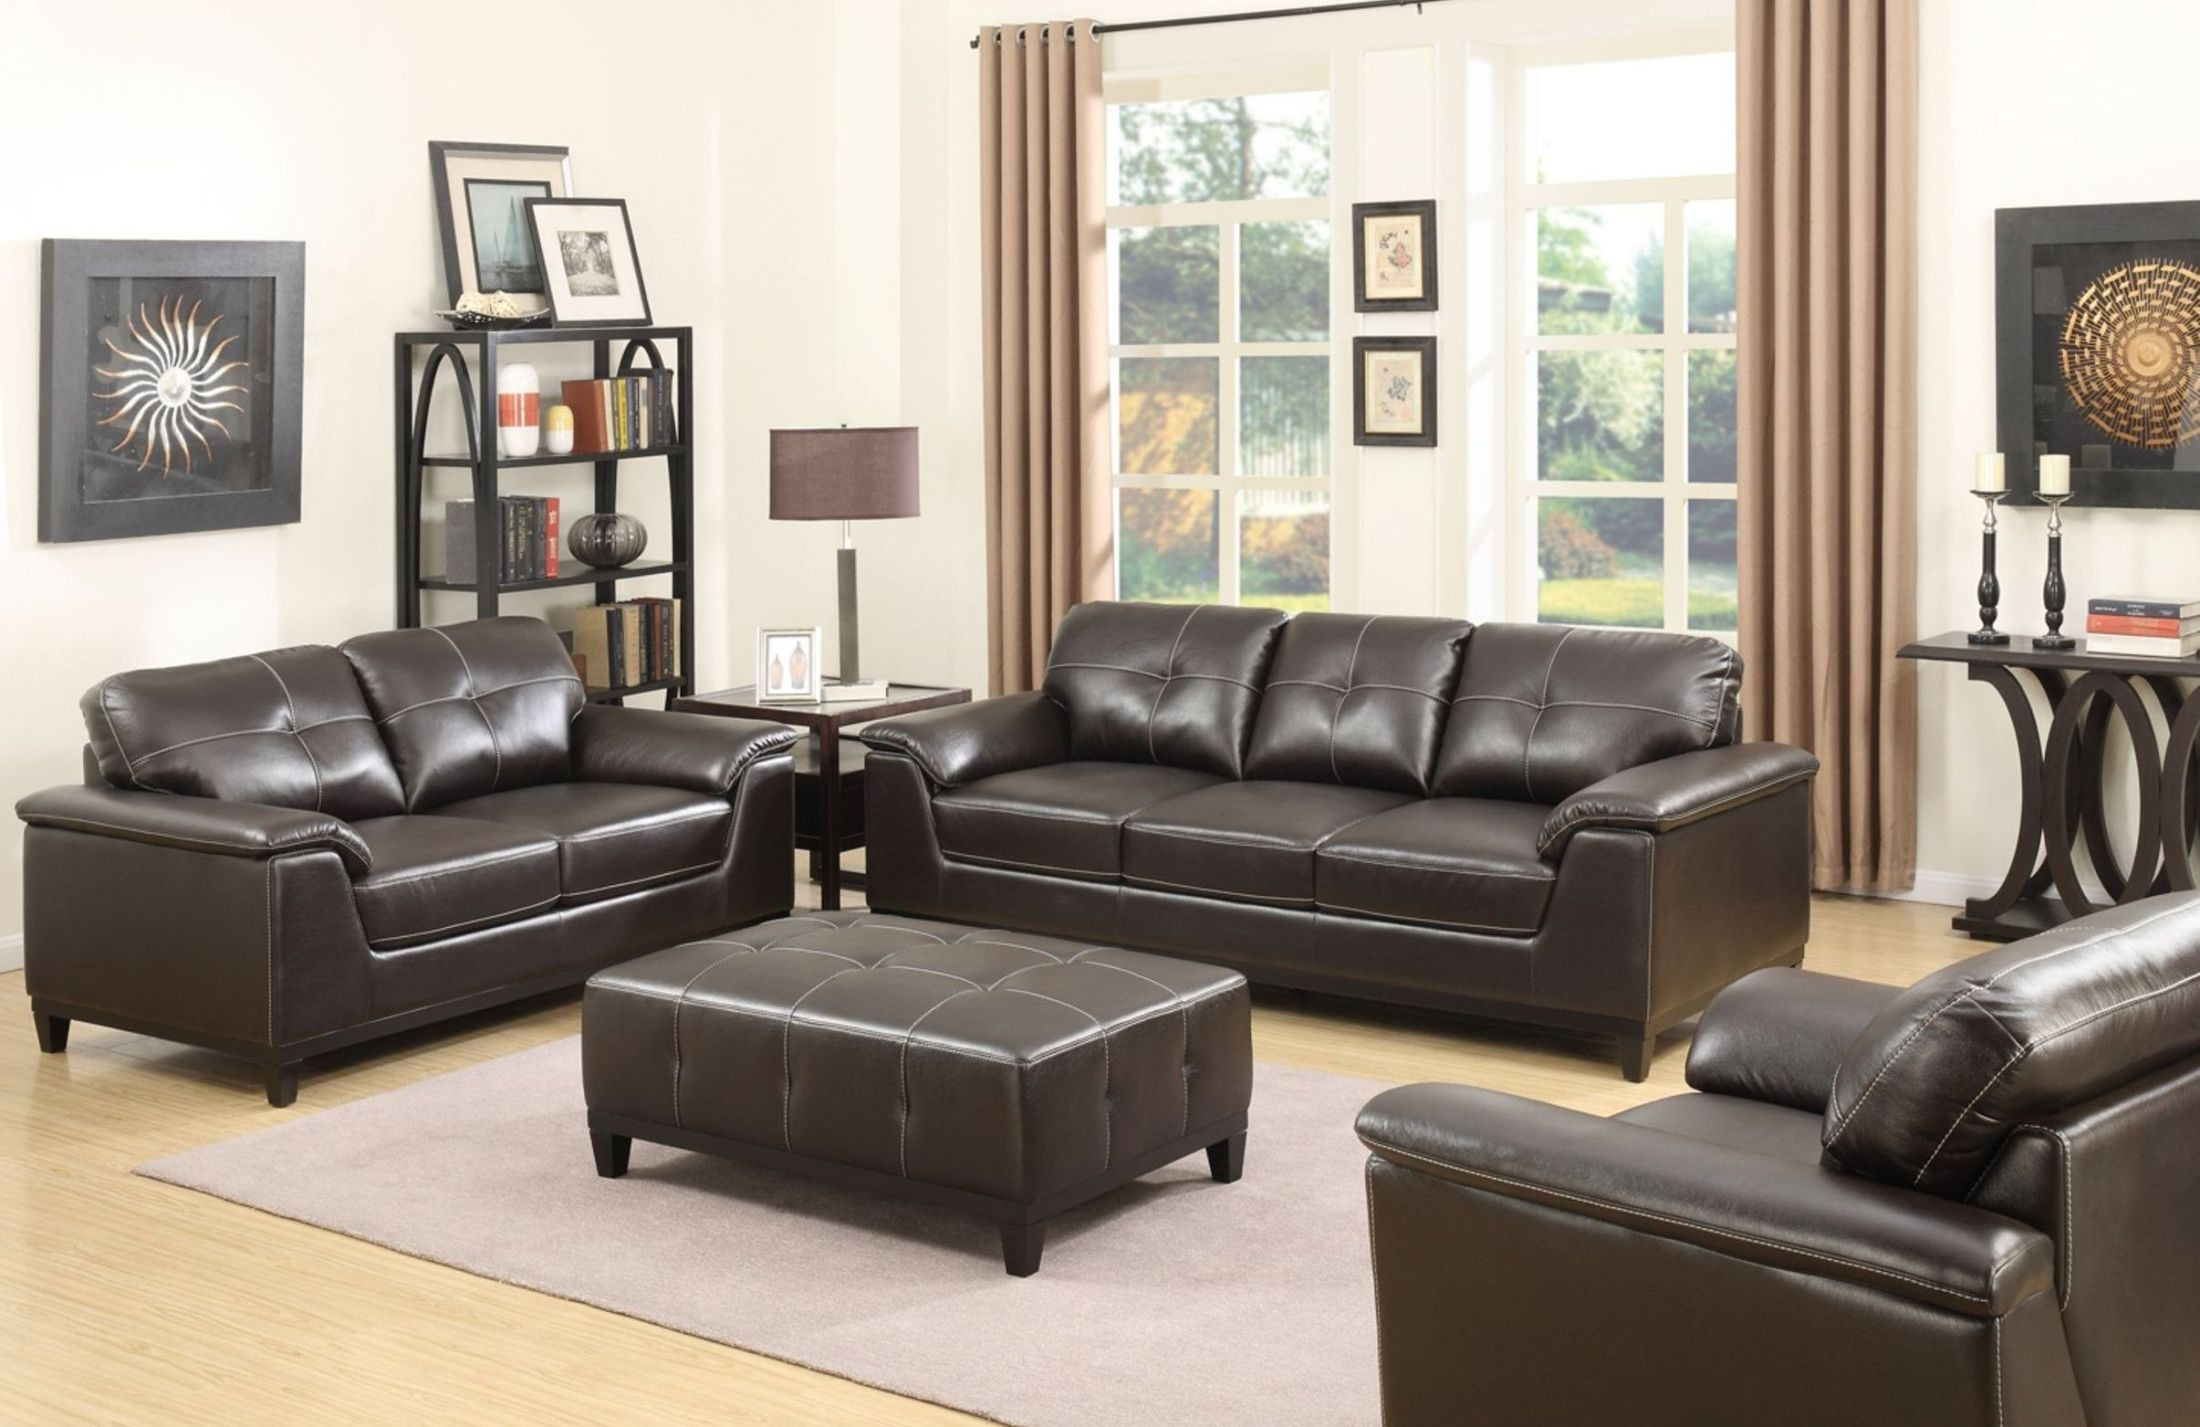 Marquis Walnut Living Room Set from Emerald Home  Coleman